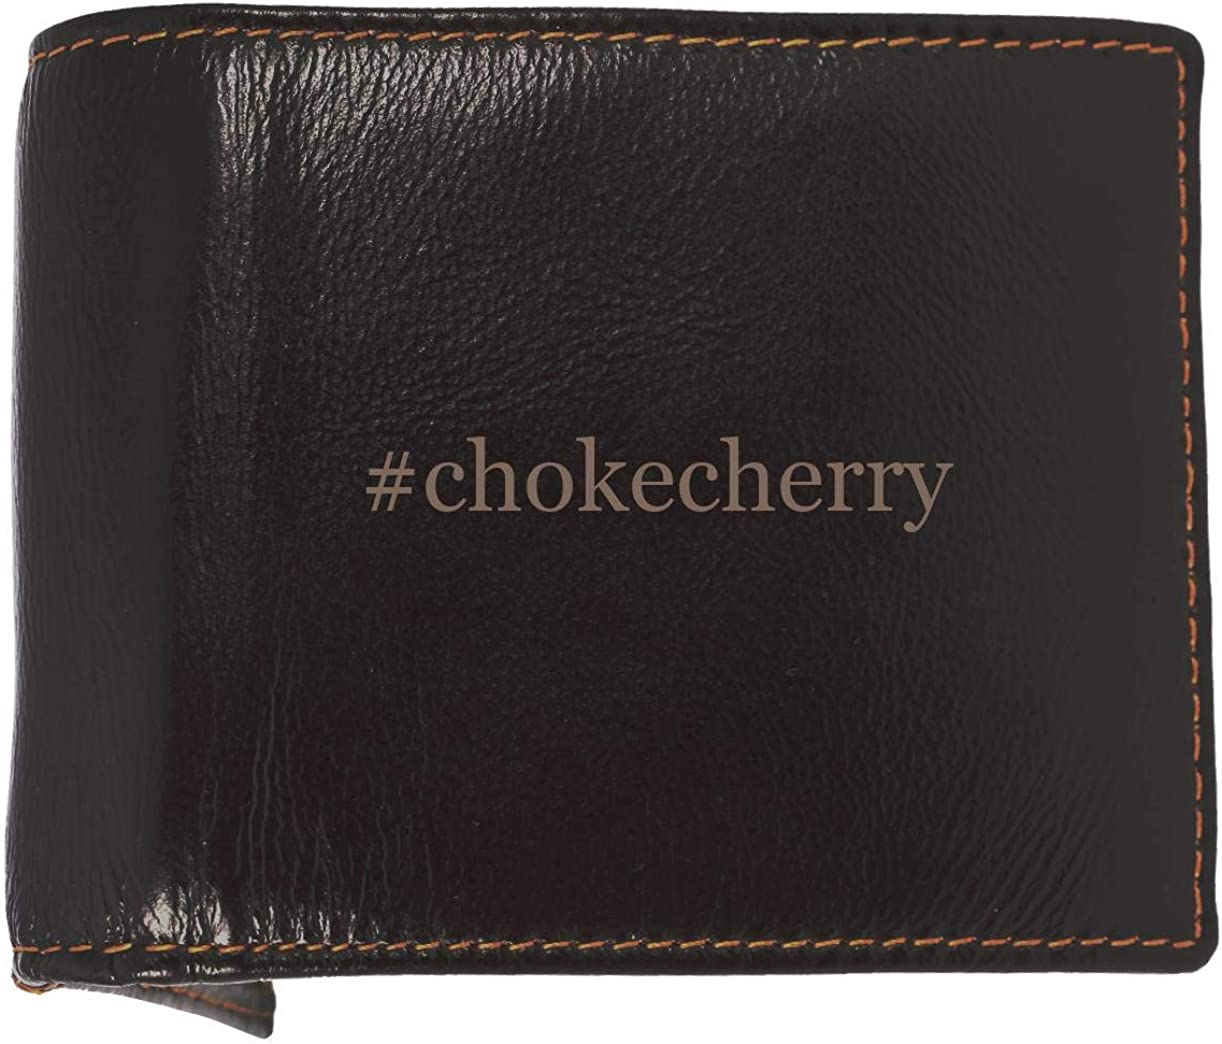 #chokecherry - Soft Hashtag Cowhide Genuine Engraved Bifold Leather Wallet 61YKW3QdlBL